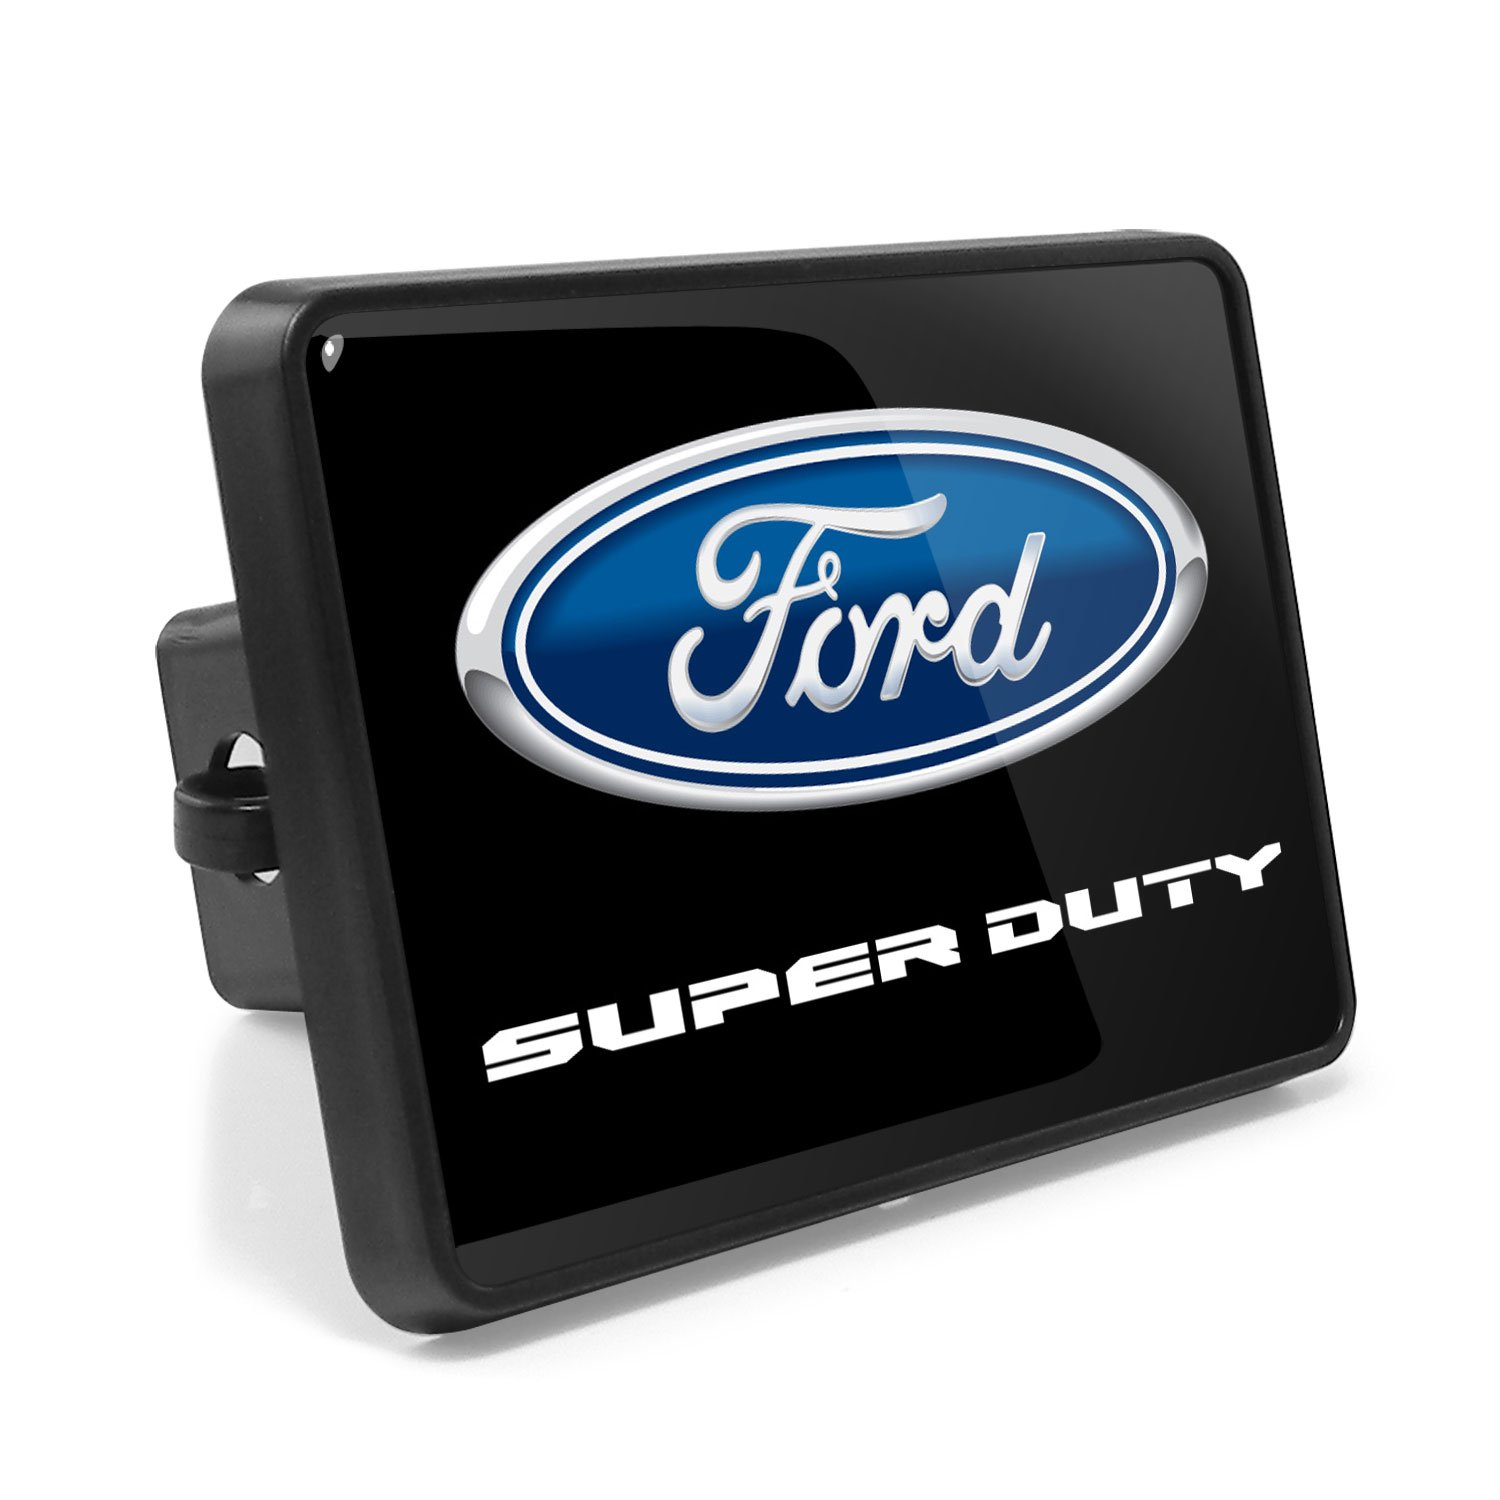 Ford F-Series Super Duty 2016 to 2017 UV Graphic Metal Plate on ABS Plastic 2' inch Tow Hitch Cover, Made in USA iPick Image